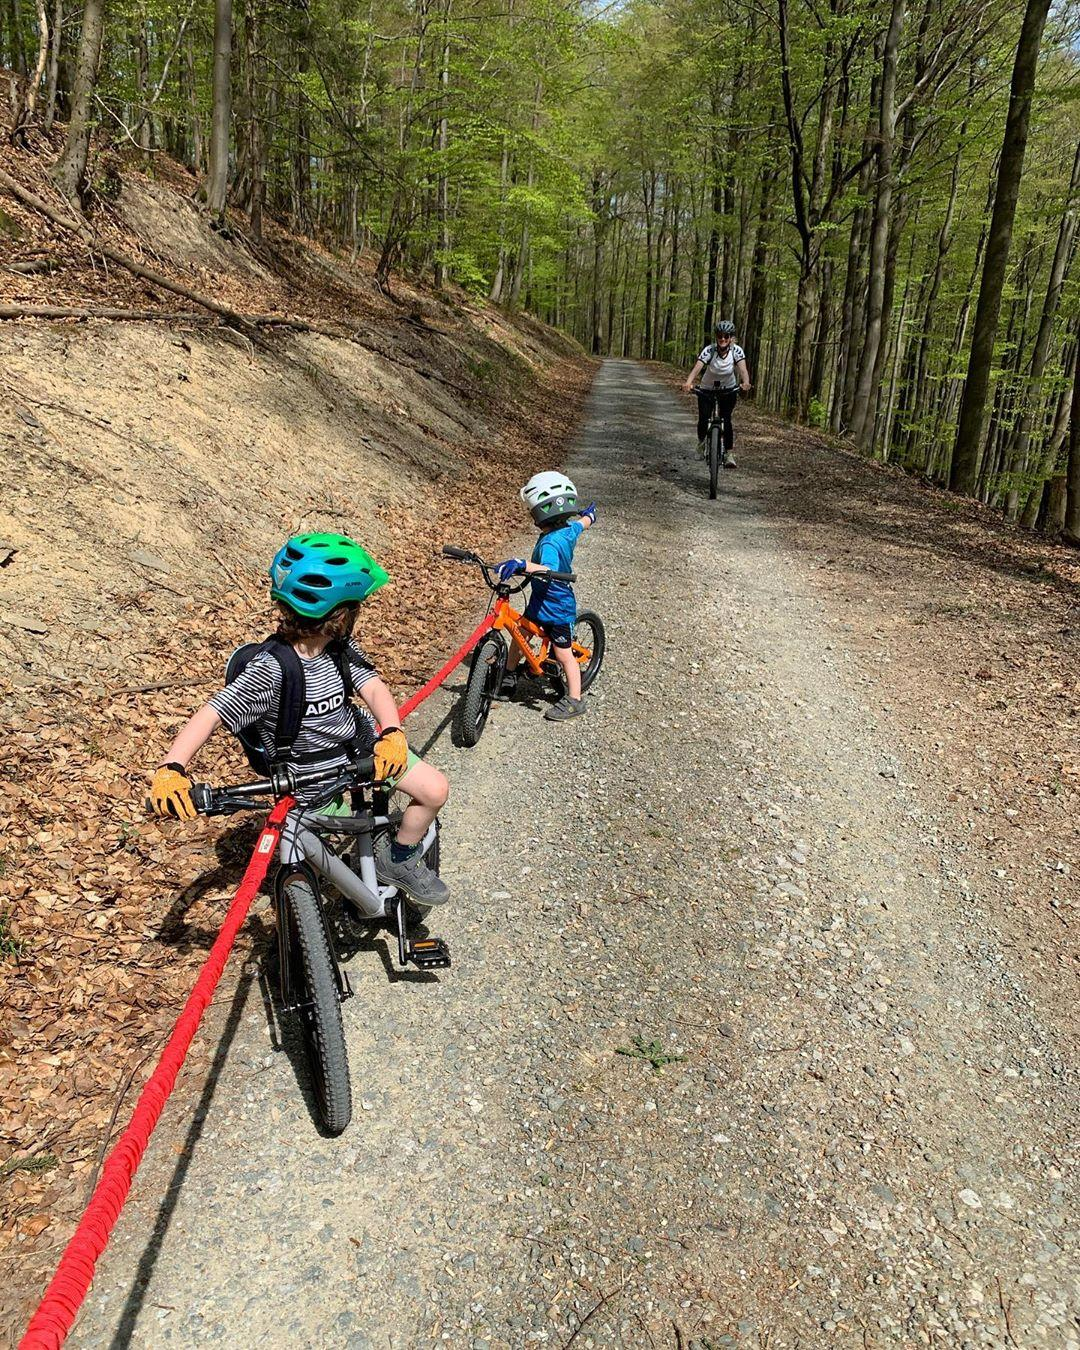 2 children attached to their dads bike using a towwhee bungee device taken by instagram @florianwiemeyer